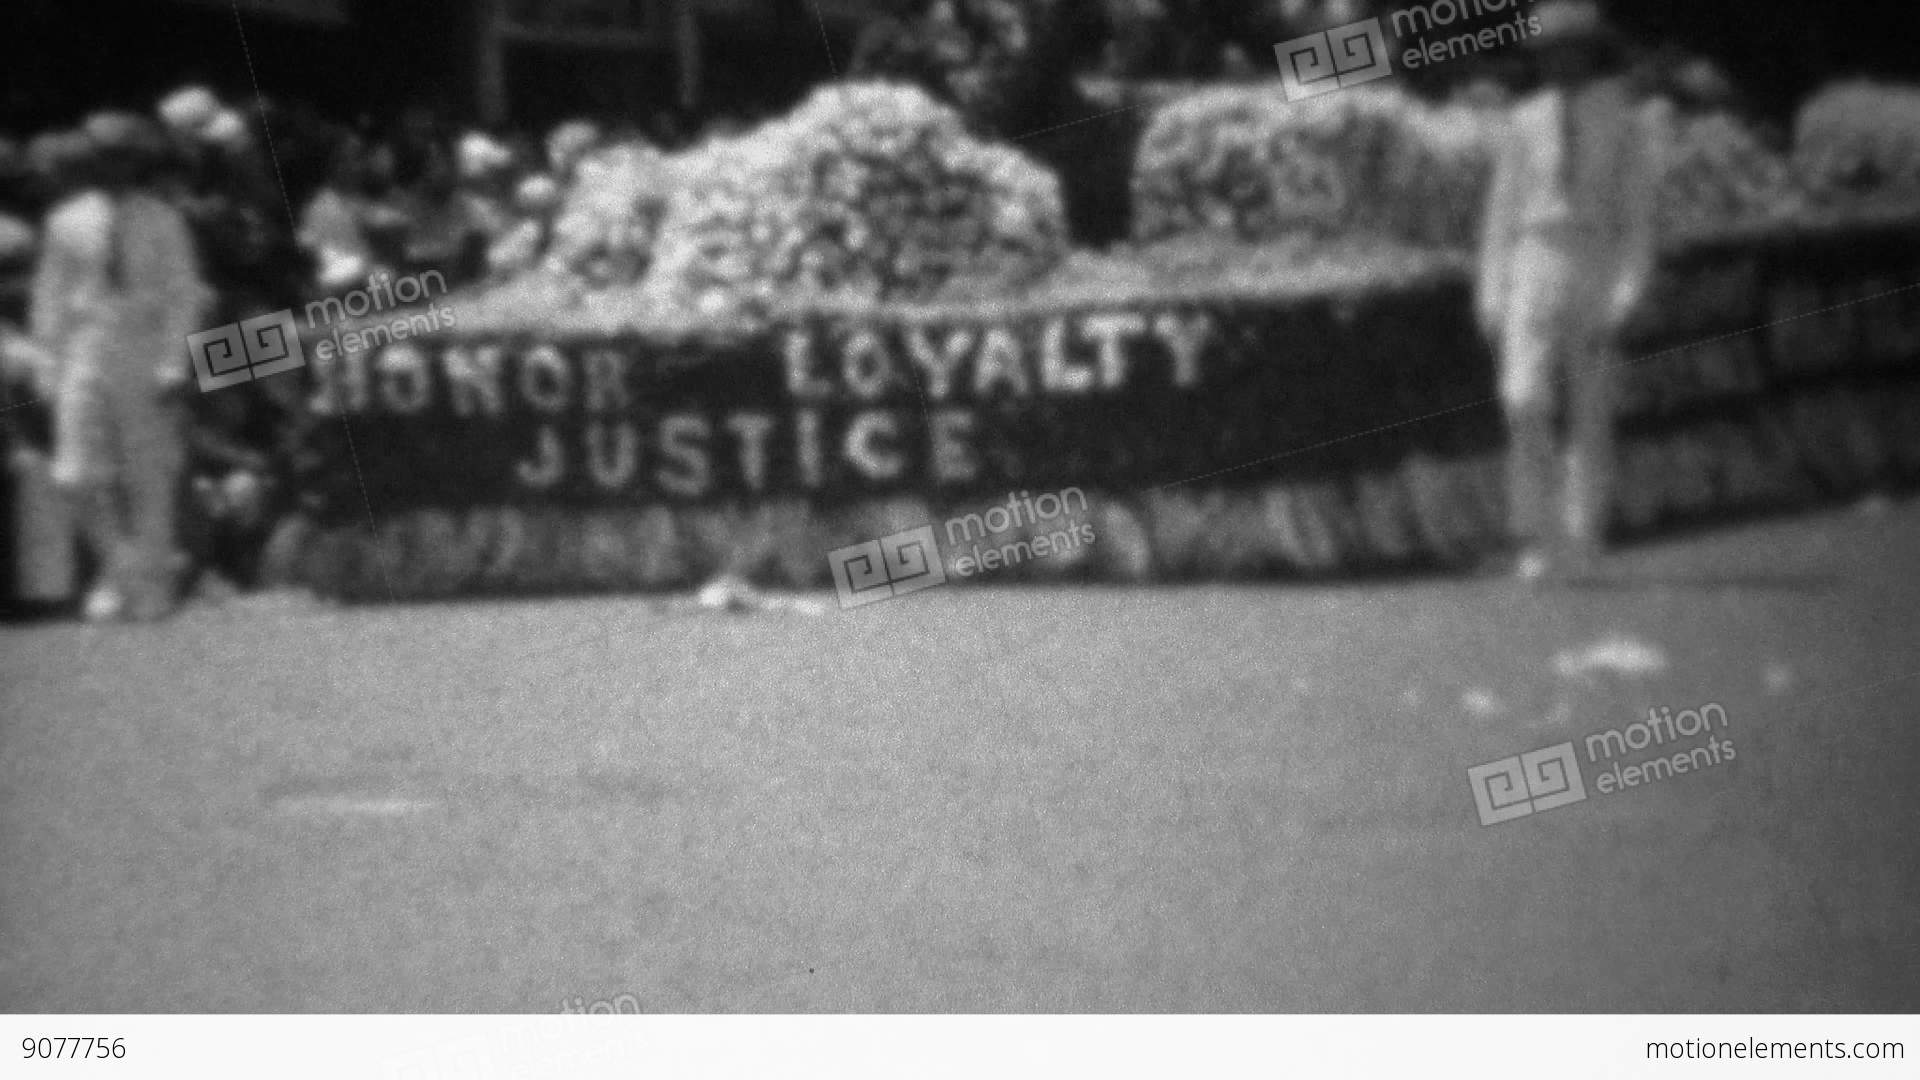 1945 honor loyalty justice ww2 victory flower covered parade float